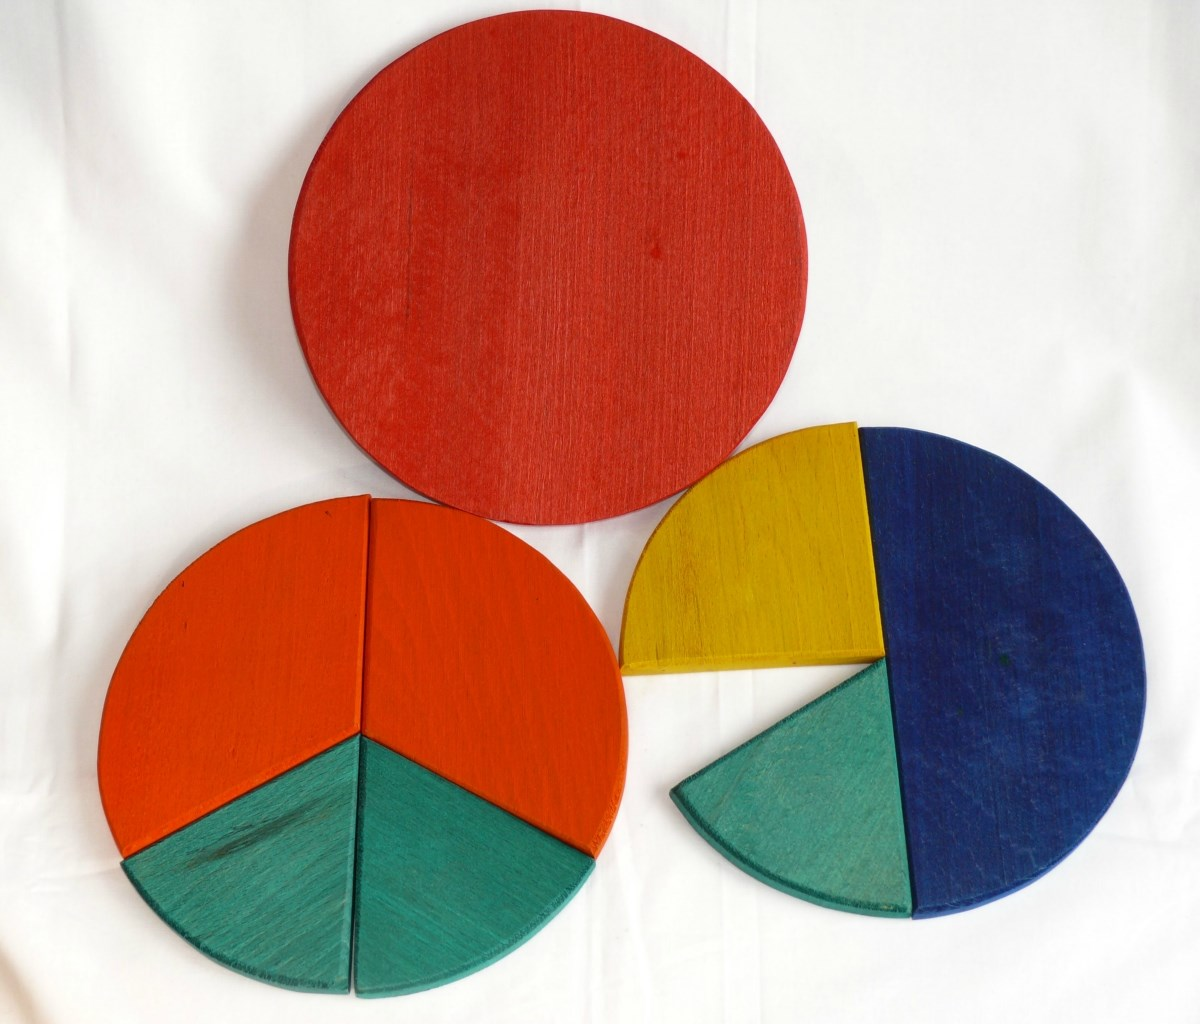 Fraction pie slices